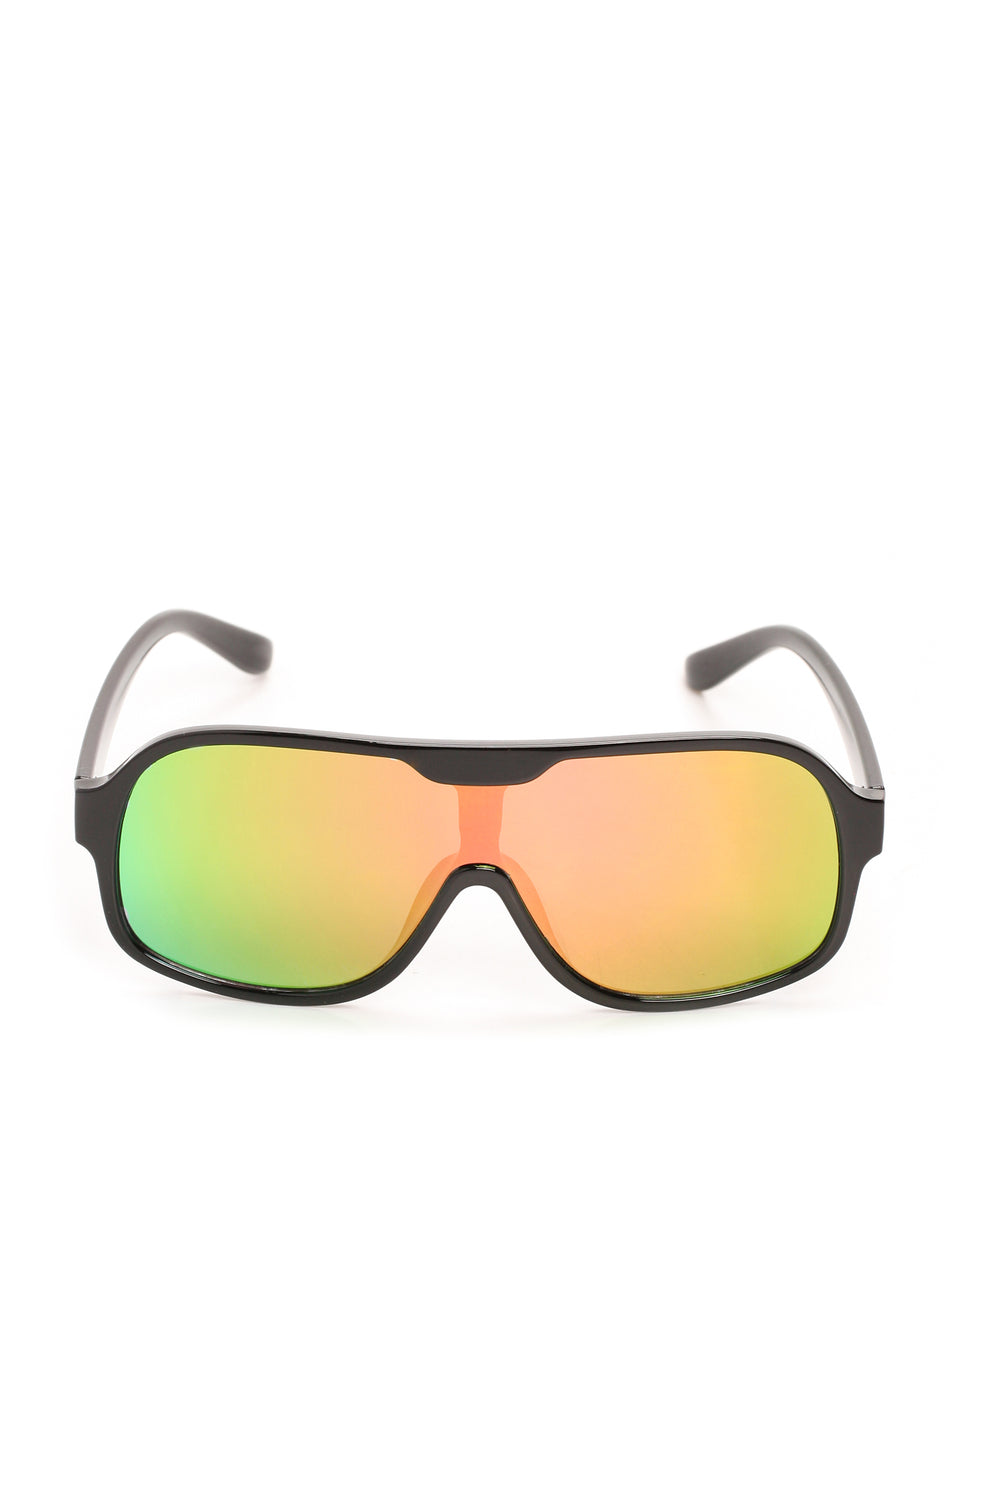 Hills Sunglasses - Multi